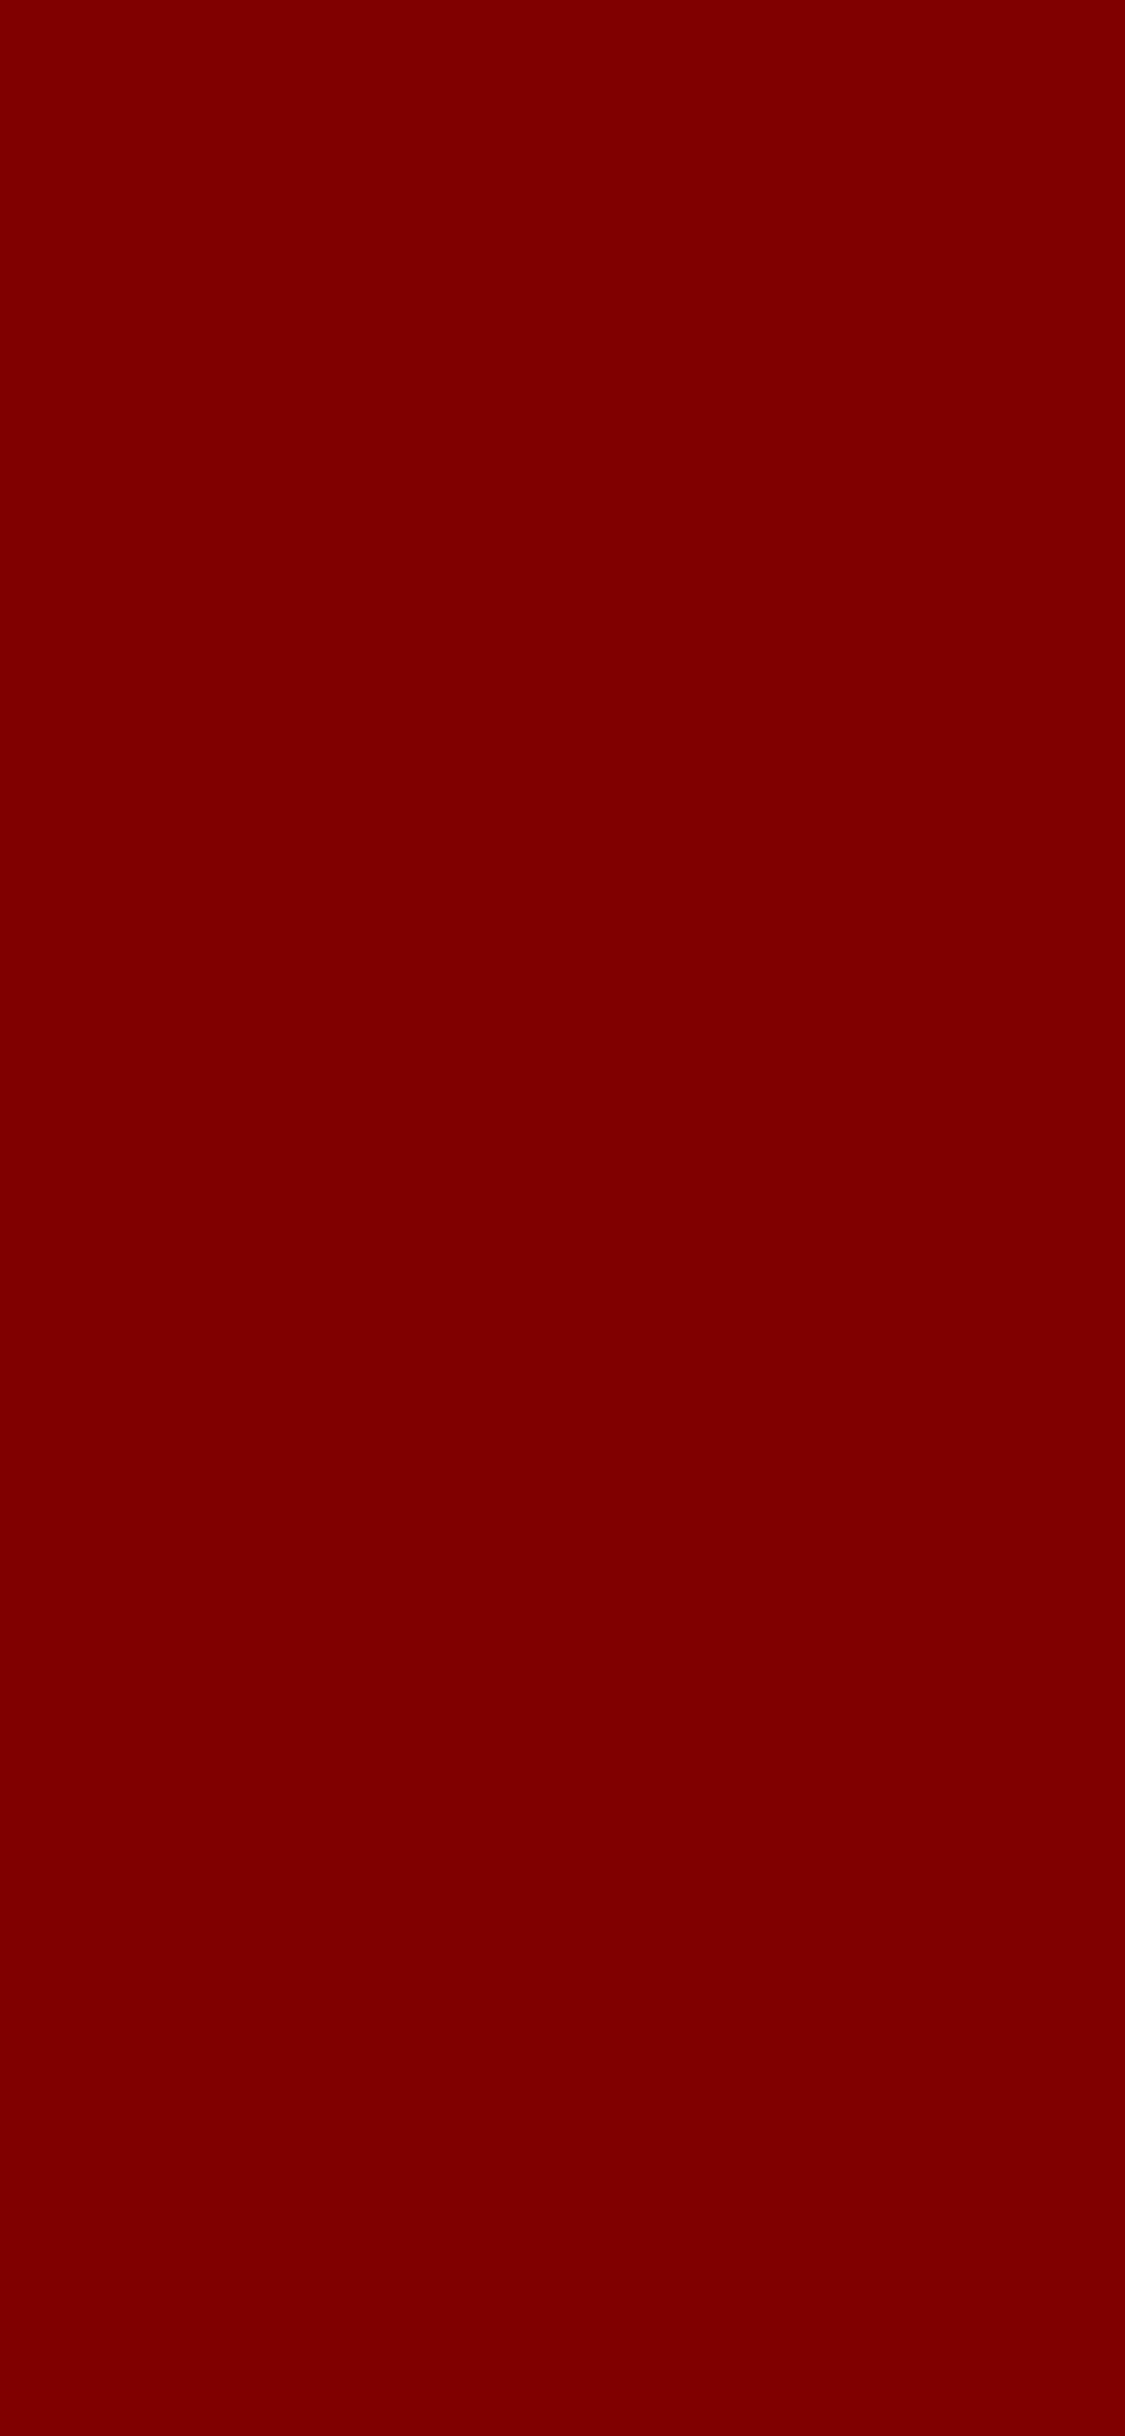 1125x2436 Maroon Web Solid Color Background